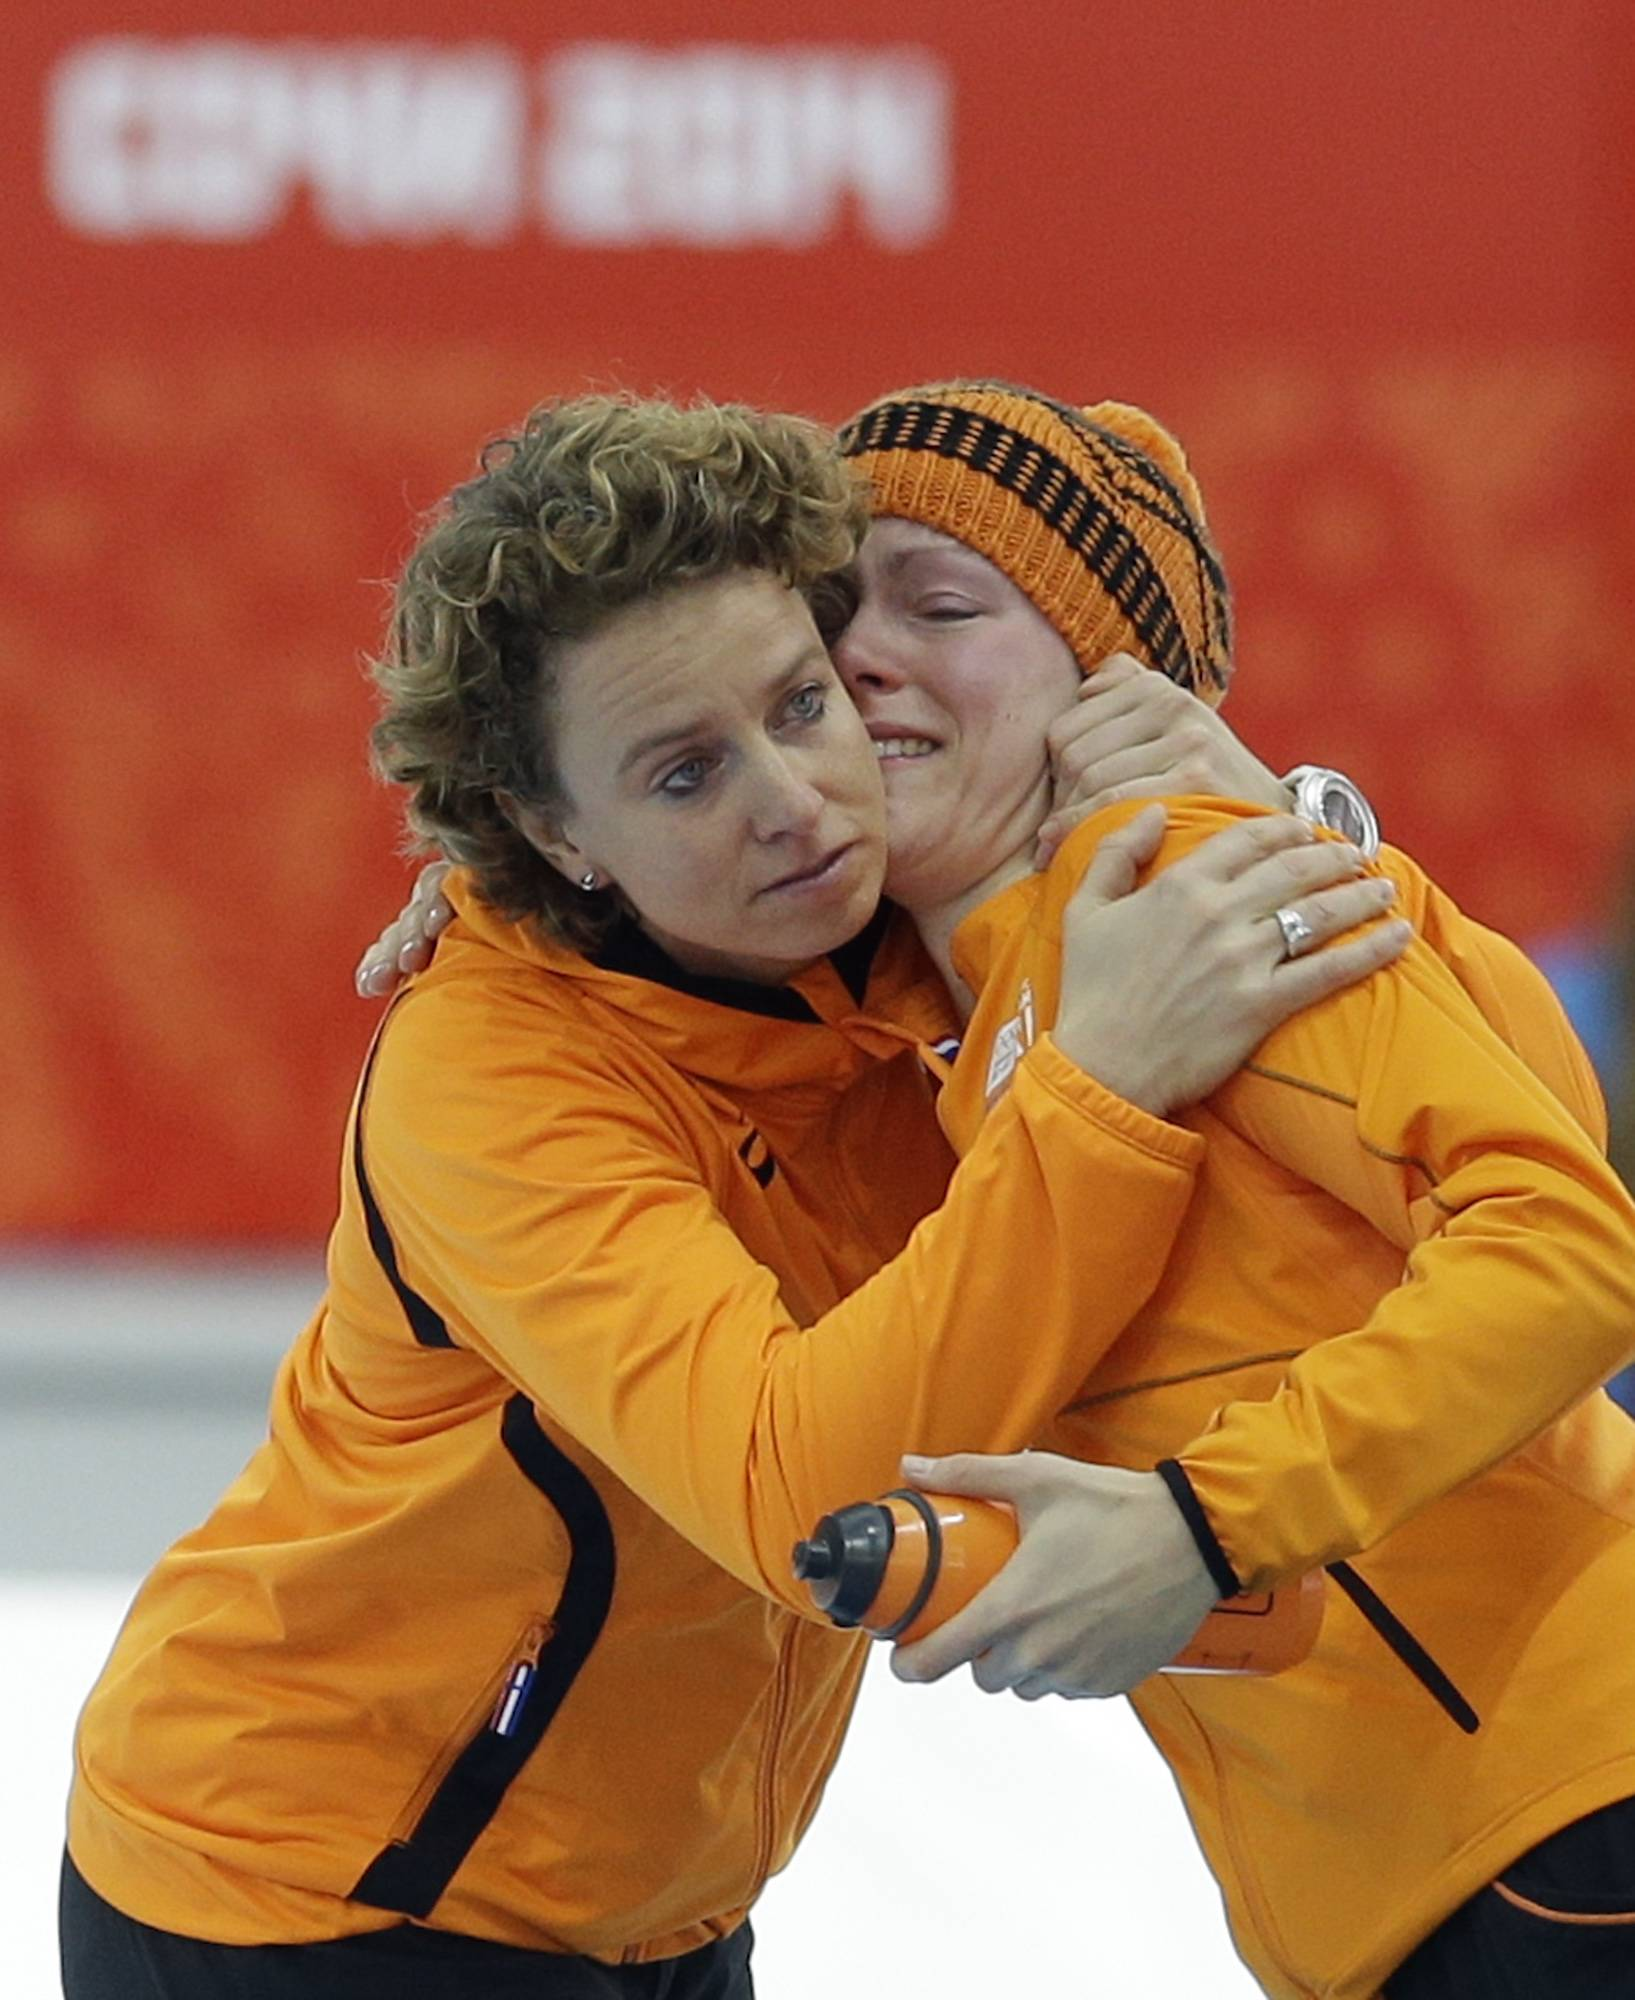 An emotional Jorien ter Mors of the Netherlands is hugged by a team member after she won gold for the women's 1,500-meter speedskating race at the Adler Arena Skating Center during the 2014 Winter Olympics in Sochi, Russia, Sunday, Feb. 16, 2014.